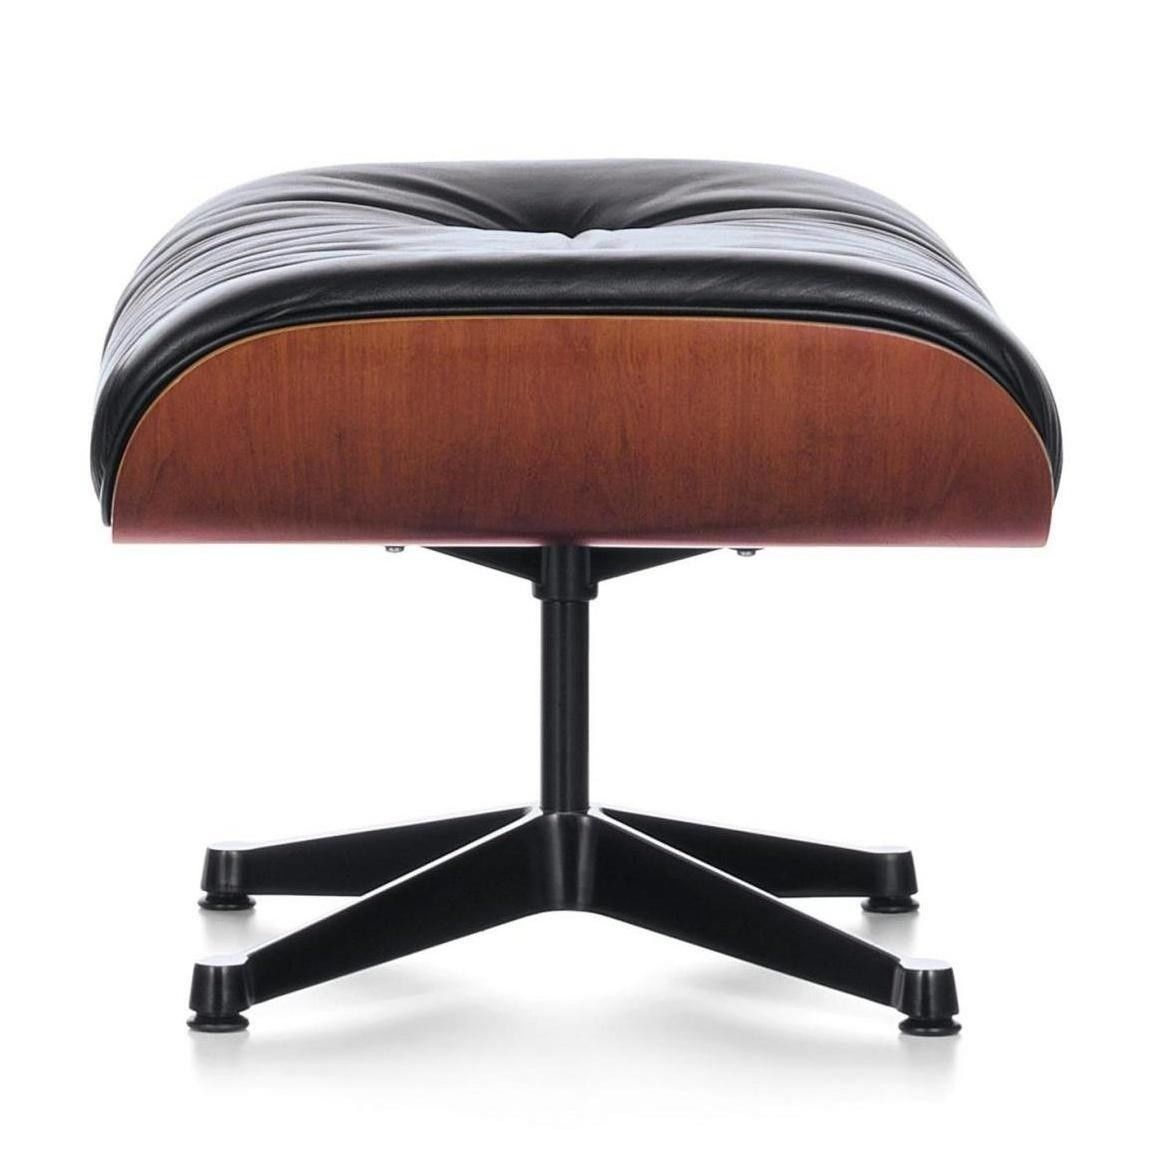 Vitra   Eames Lounge Chair Ottoman   Leather Premium Black/shell Natural  Cherry Wood/